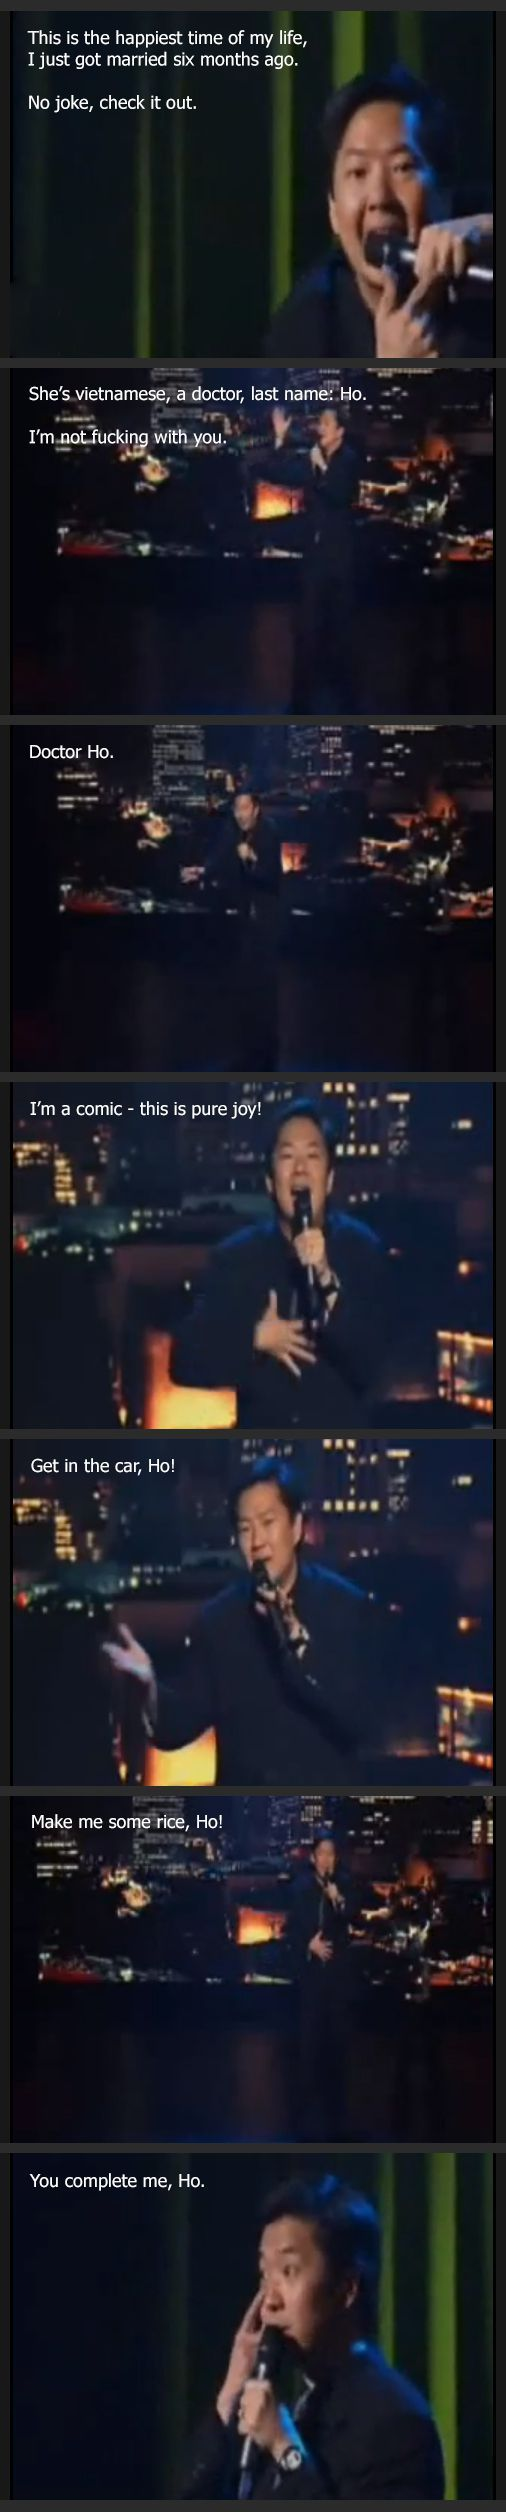 Ken Jeong's marriage...